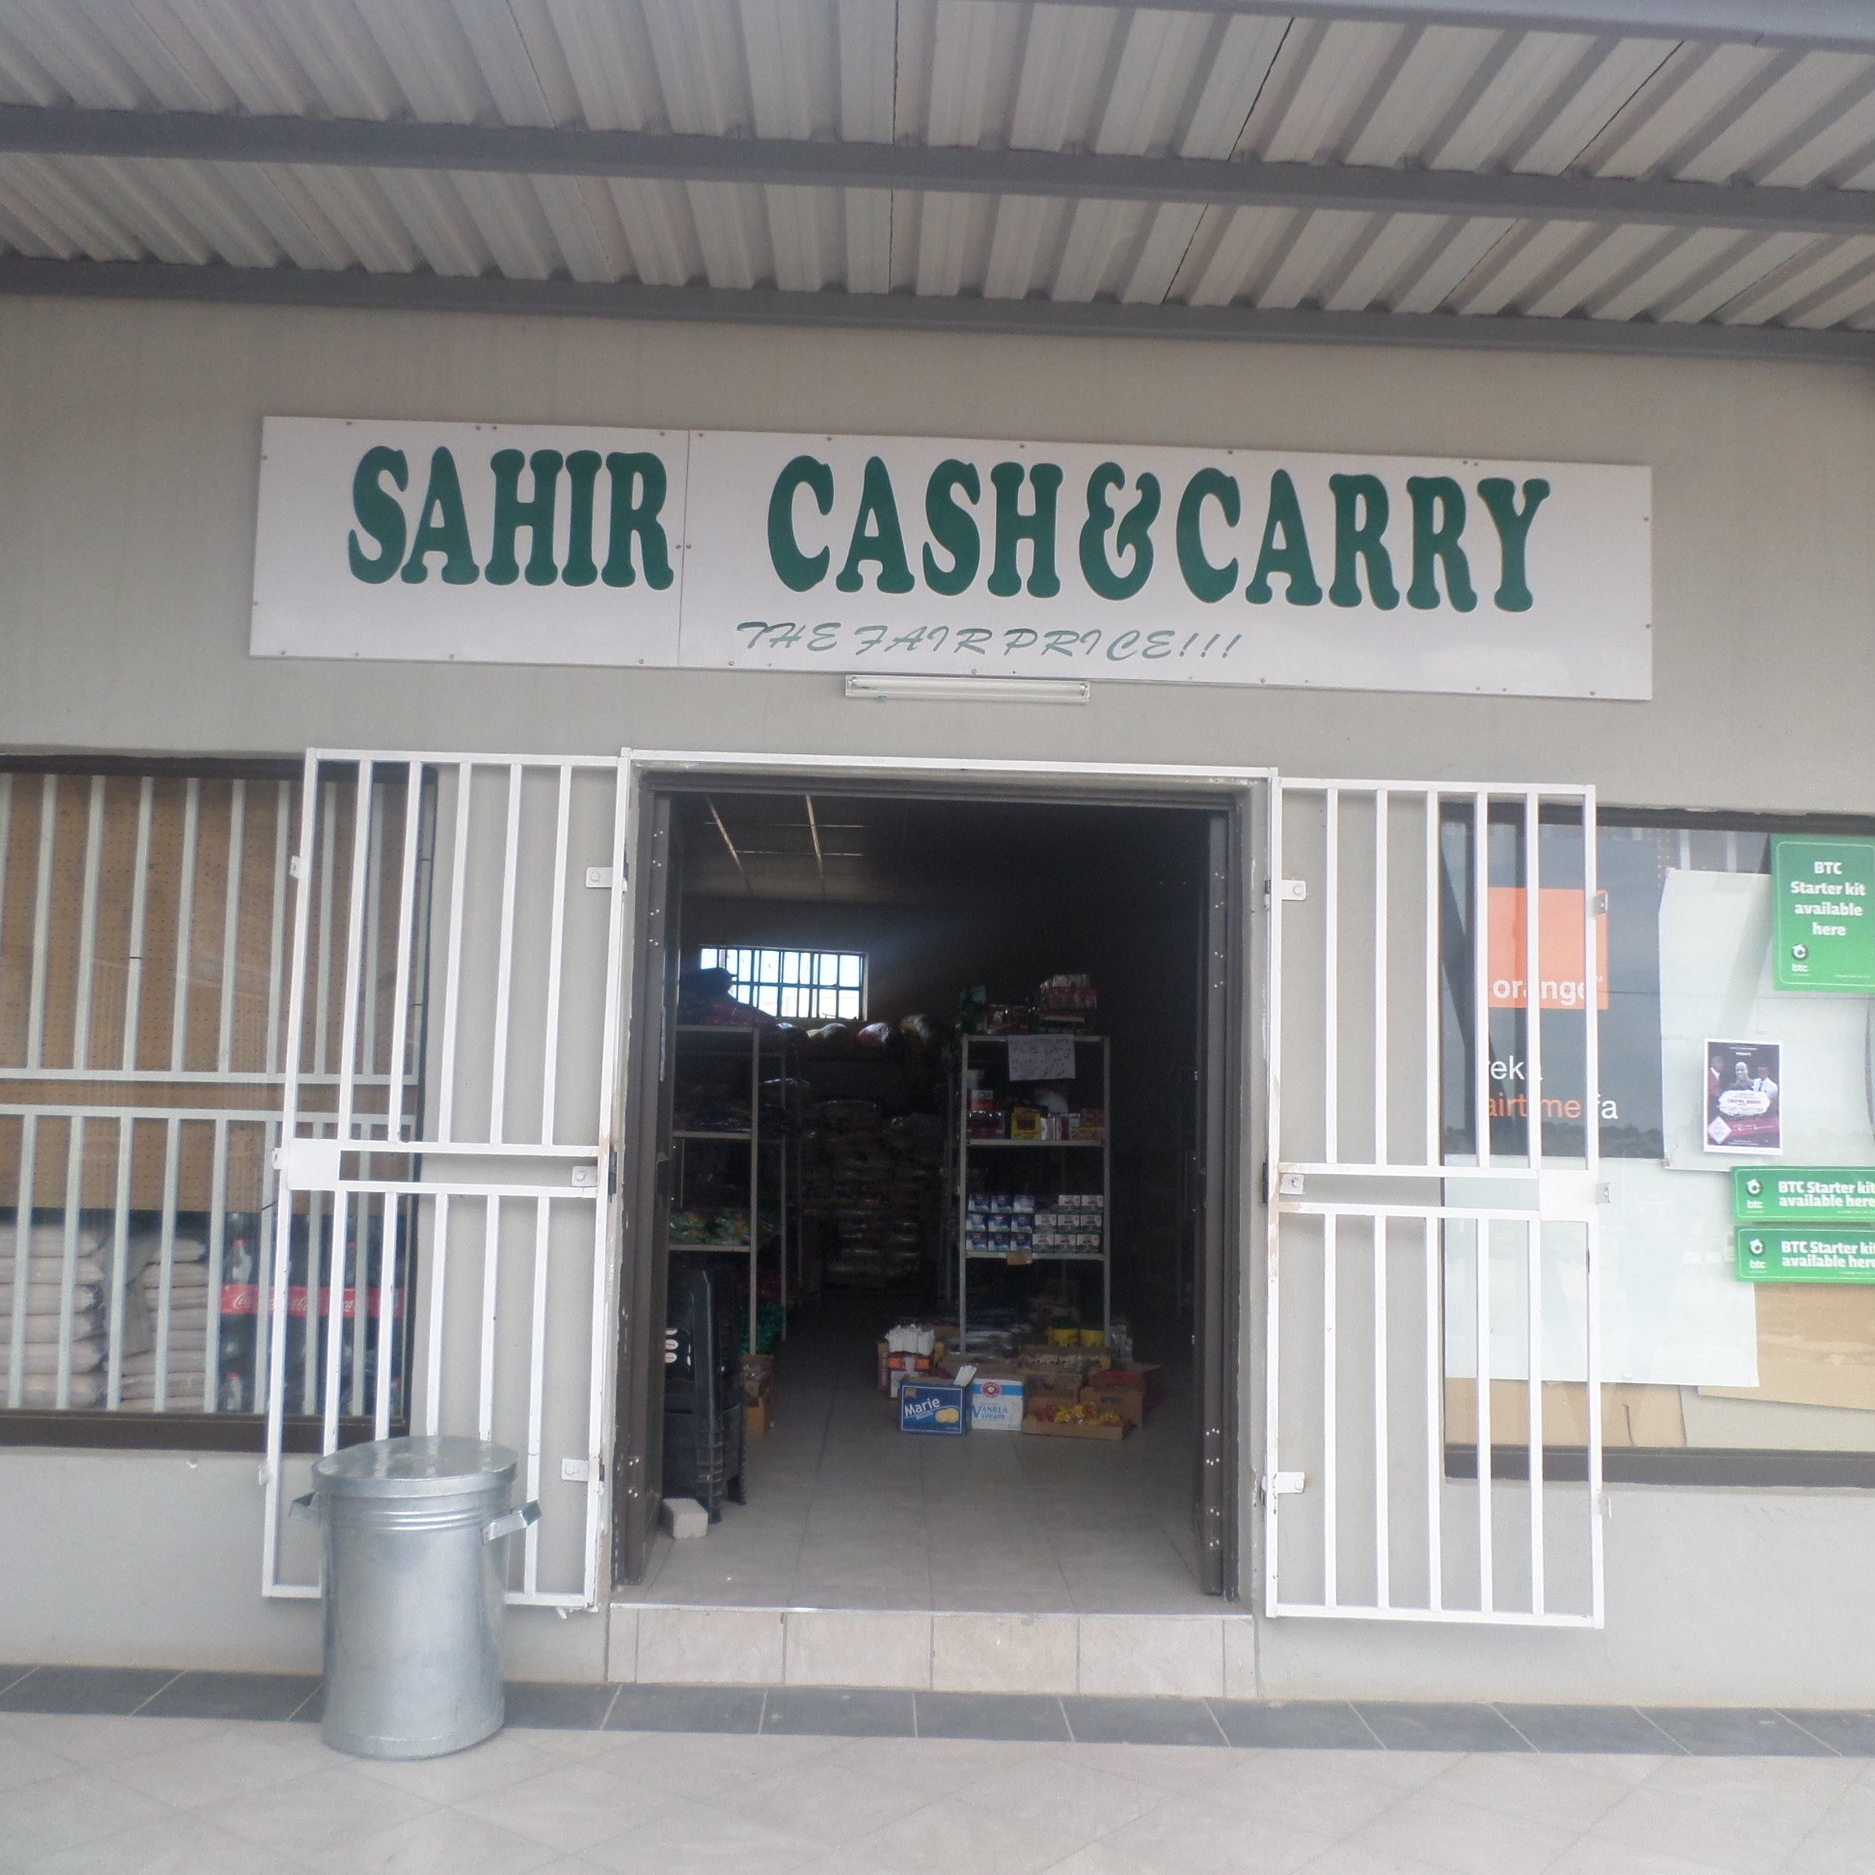 Sahir Cash & Carry - Service Description∙ Grocery , Cosmetics Hakers items, HardwareOpening Hours:Monday - Friday: 08:30-17:30Saturday: 08:30-14:30Sunday:Directions:Modimo WardContact: Alam Gir📞 (+267) 74 98 97 59✎ @